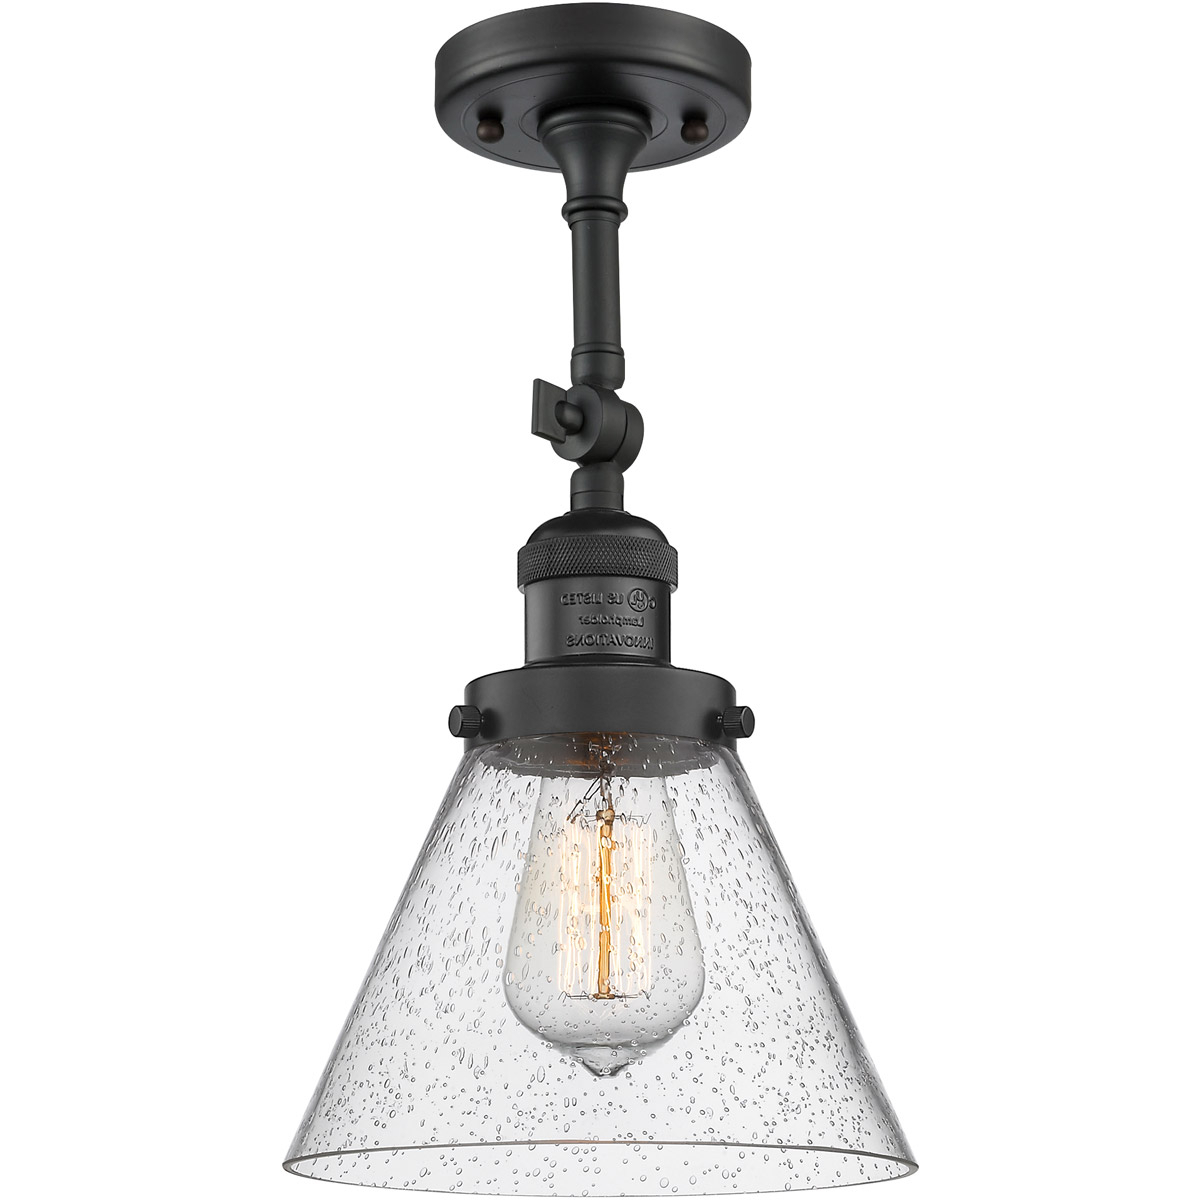 Trendy Keikilani Matte Black Wall Lighting Intended For Innovations Lighting 203 Bk G44 Led Large Cone Wall Sconce (View 2 of 20)